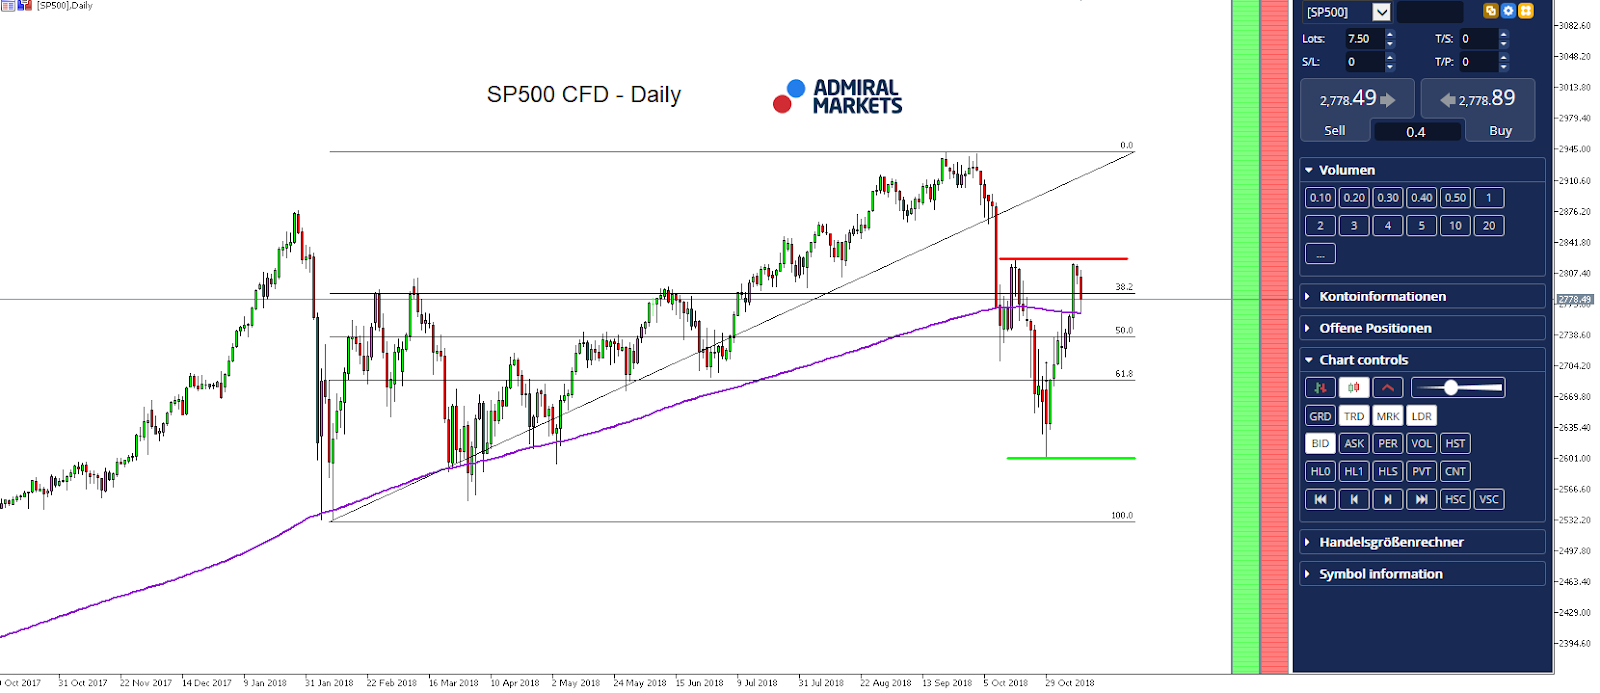 SP500 CFD - Daily